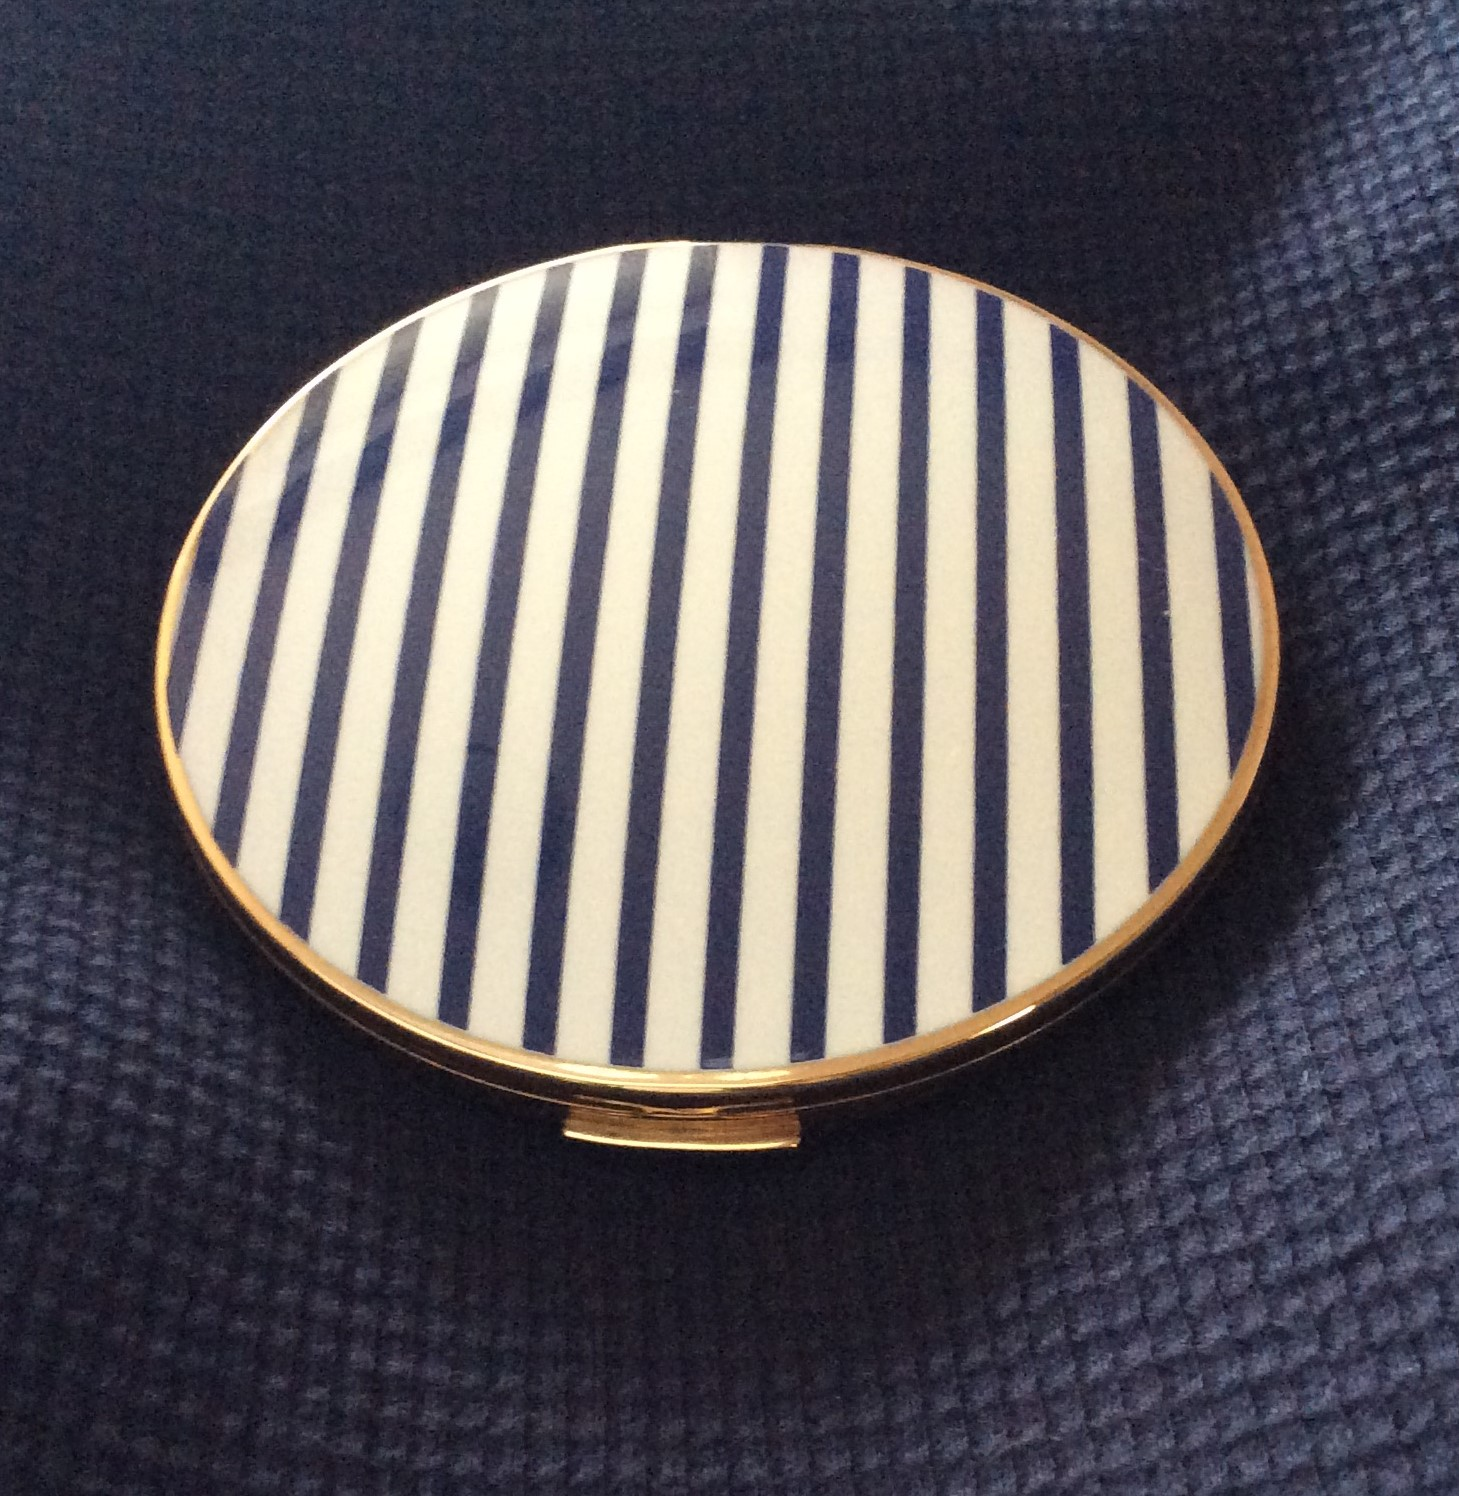 Vintage STRATTON Convertible Naucital Navy Blue and White Stripes Powder Compact